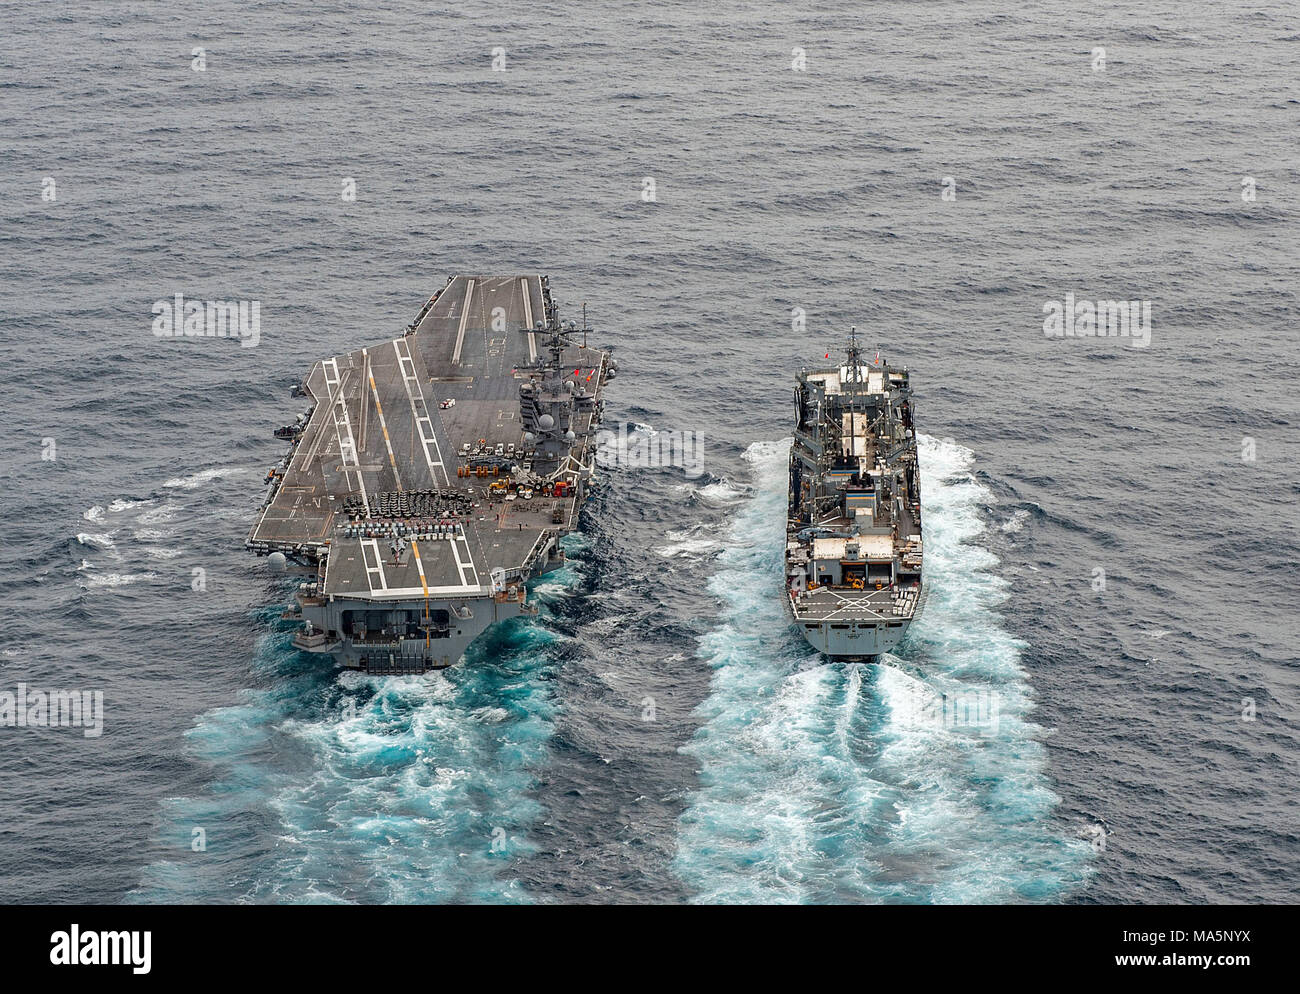 180327-N-JC445-0413 ATLANTIC OCEAN (March 27, 2018) The fast combat support ship USNS Supply (T-AOE 6) sails alongside the aircraft carrier USS George H.W. Bush (CVN 77) during a replenishment-at-sea. The ship is underway conducting sustainment exercises to maintain carrier readiness. (U.S. Navy photo by Mass Communication Specialist 3rd Class Mario Coto) - Stock Image